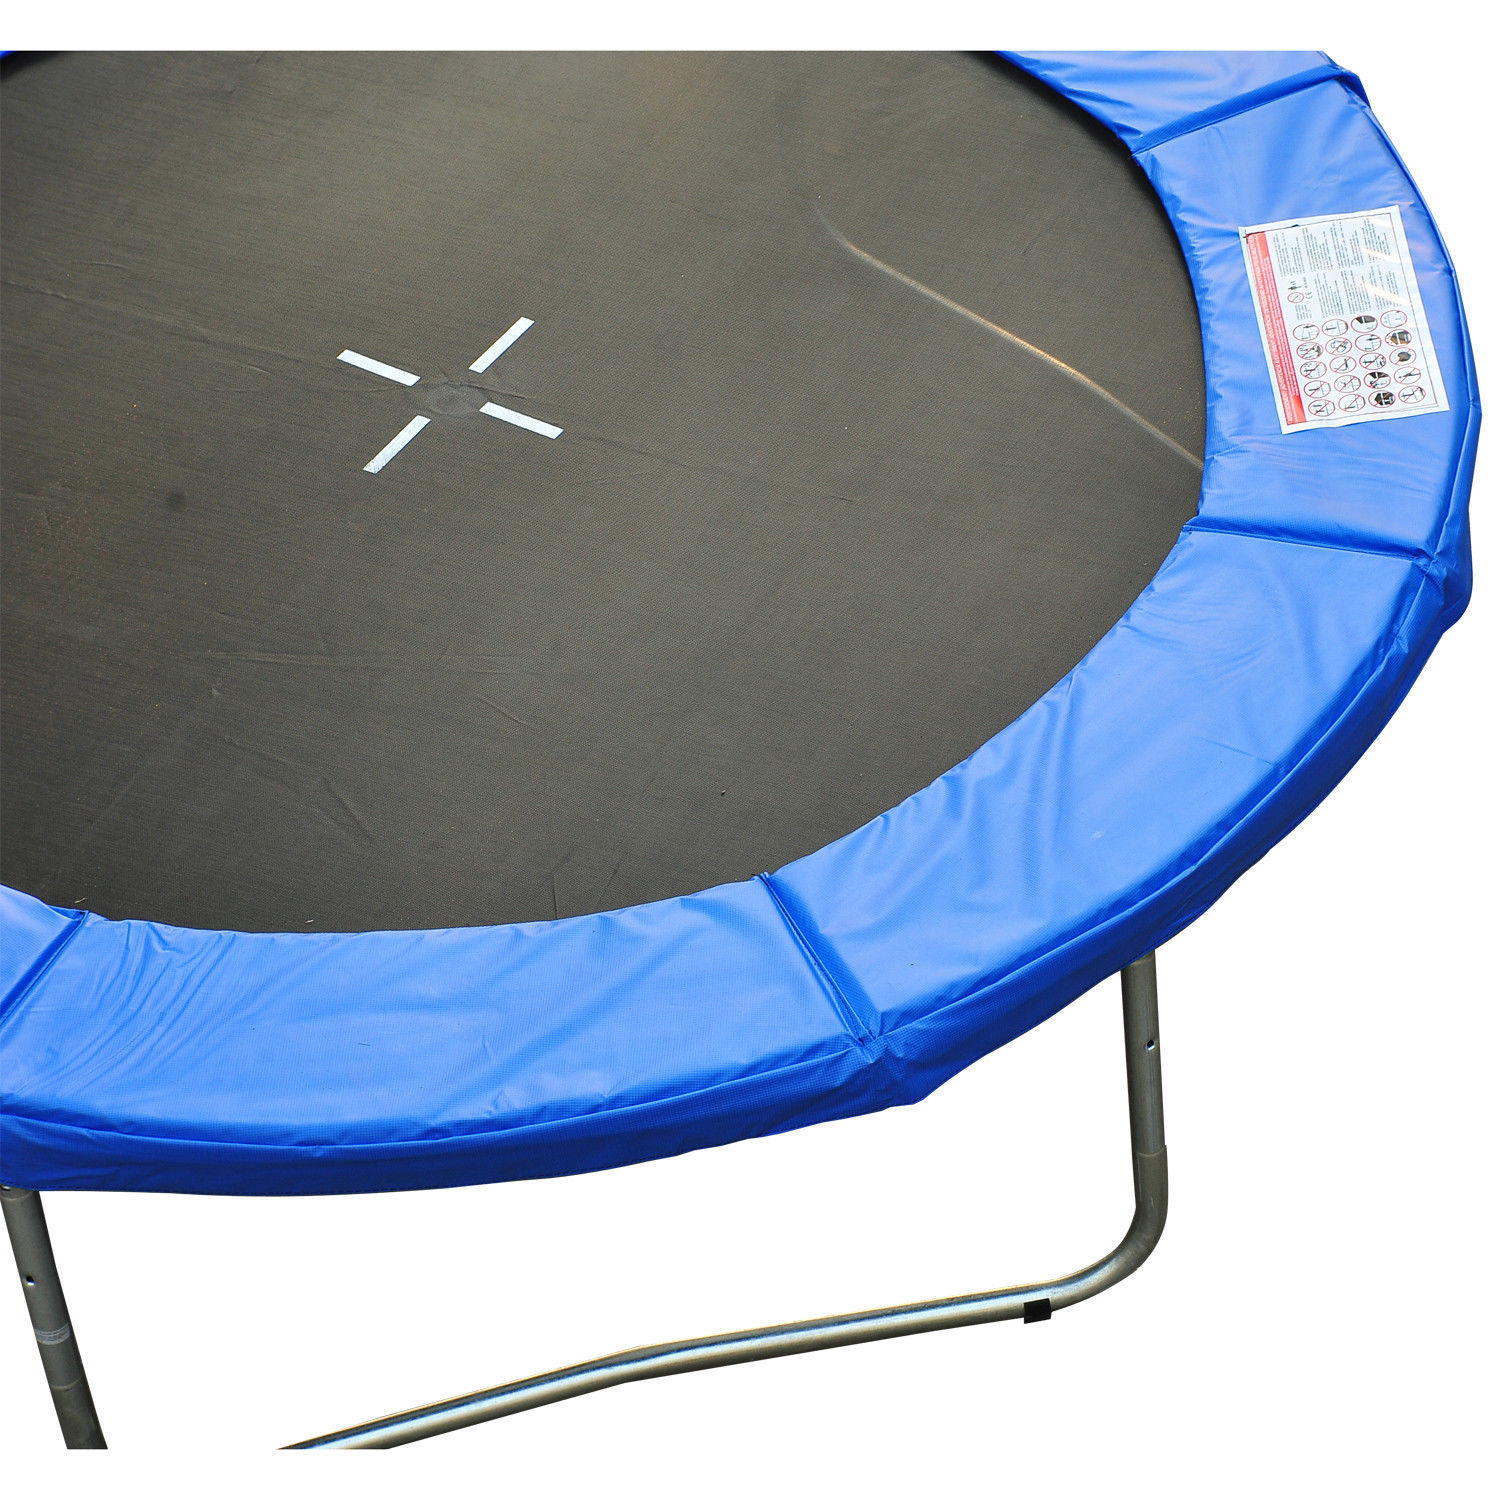 8ft 10ft 12ft 13ft Trampoline Pad Thick Surround Foam